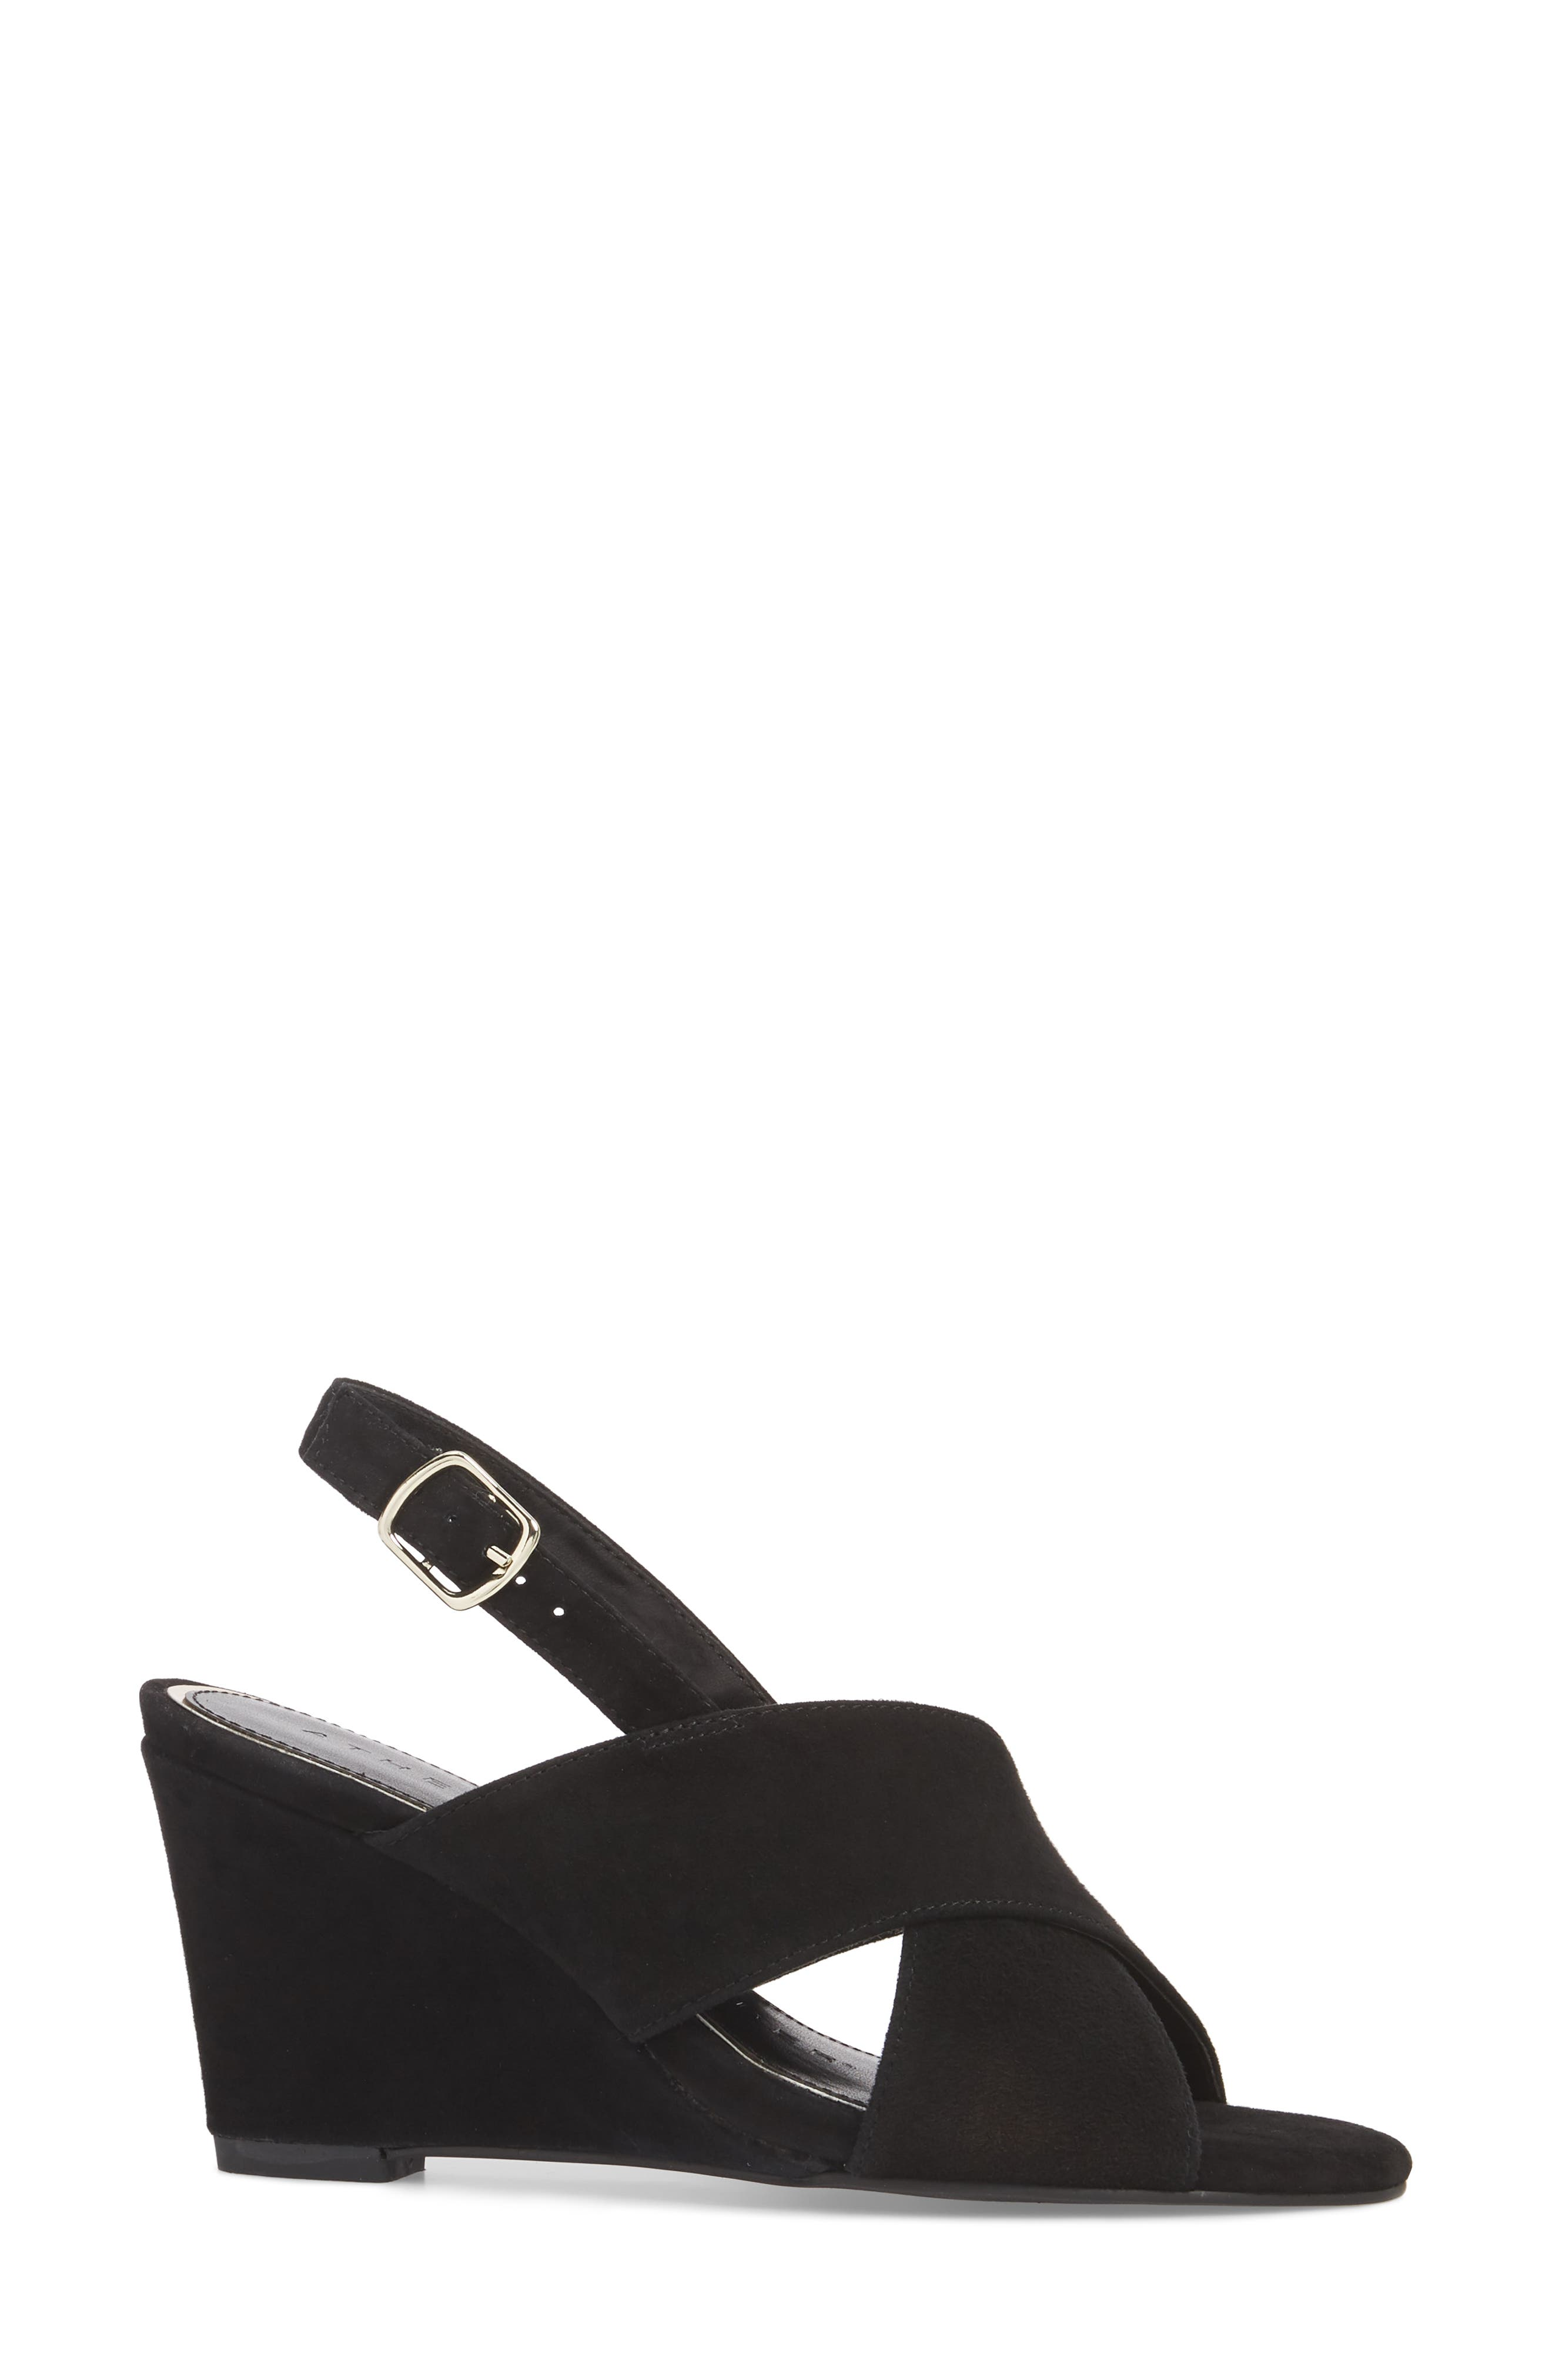 Eastford Wedge Sandal,                             Alternate thumbnail 3, color,                             BLACK SUEDE